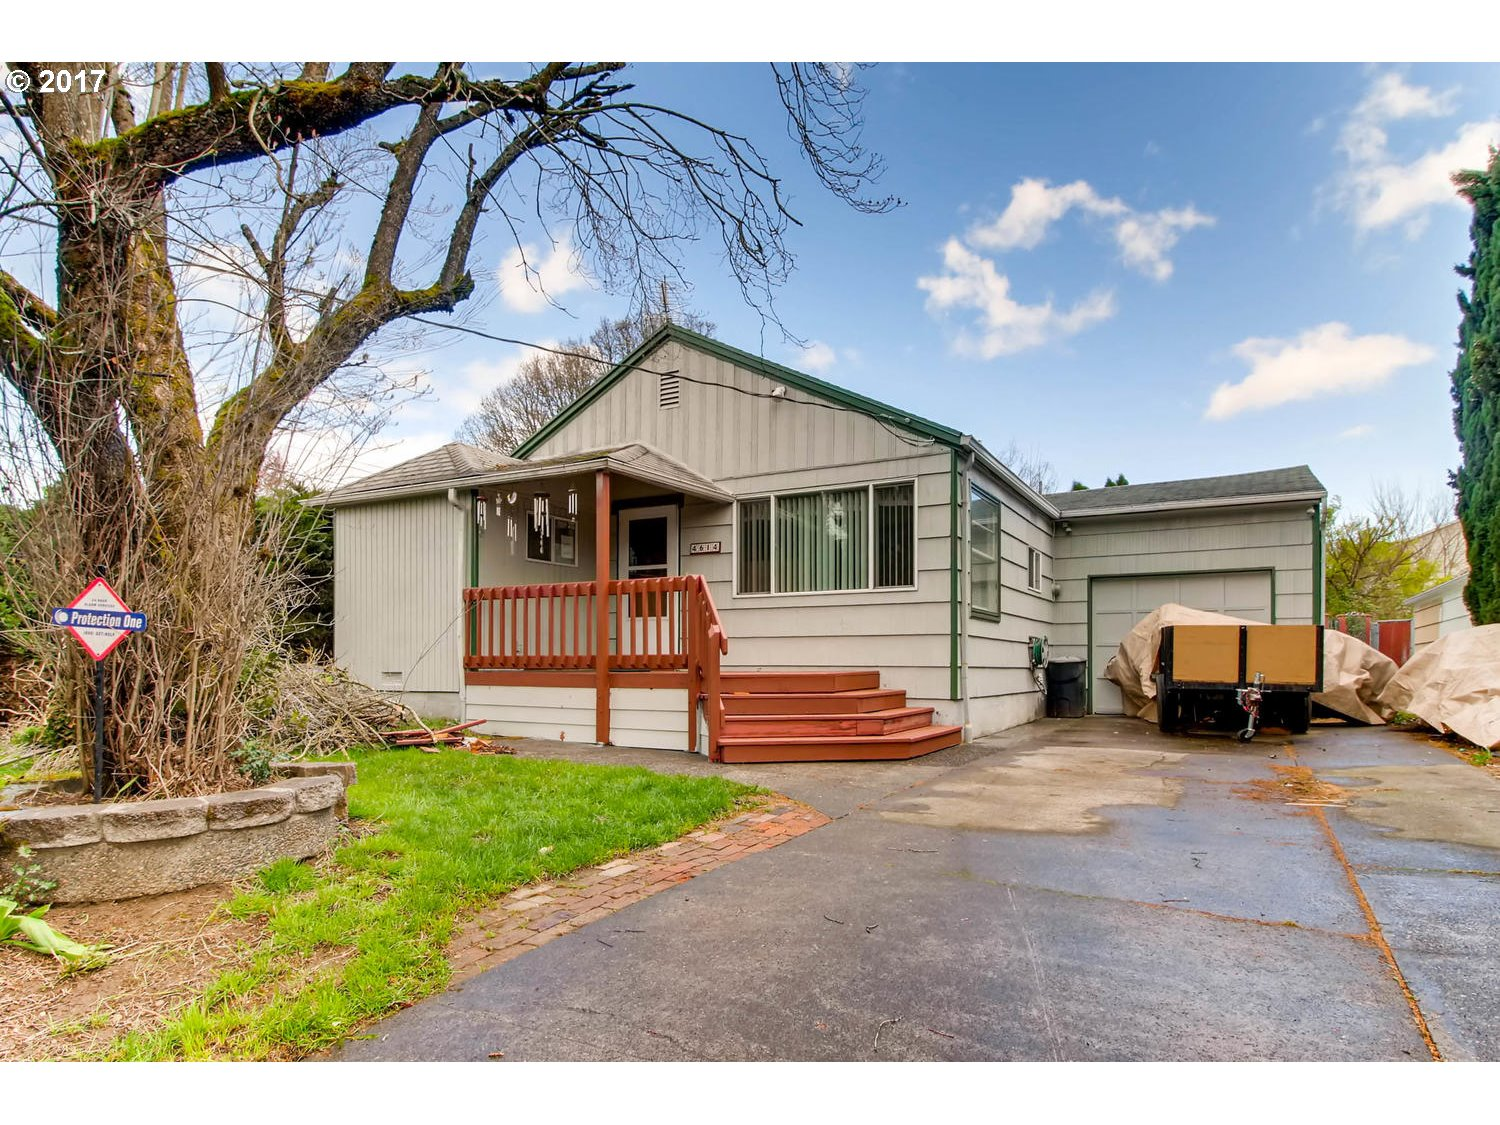 1056 sq. ft 2 bedrooms 1 bathrooms  House ,Portland, OR